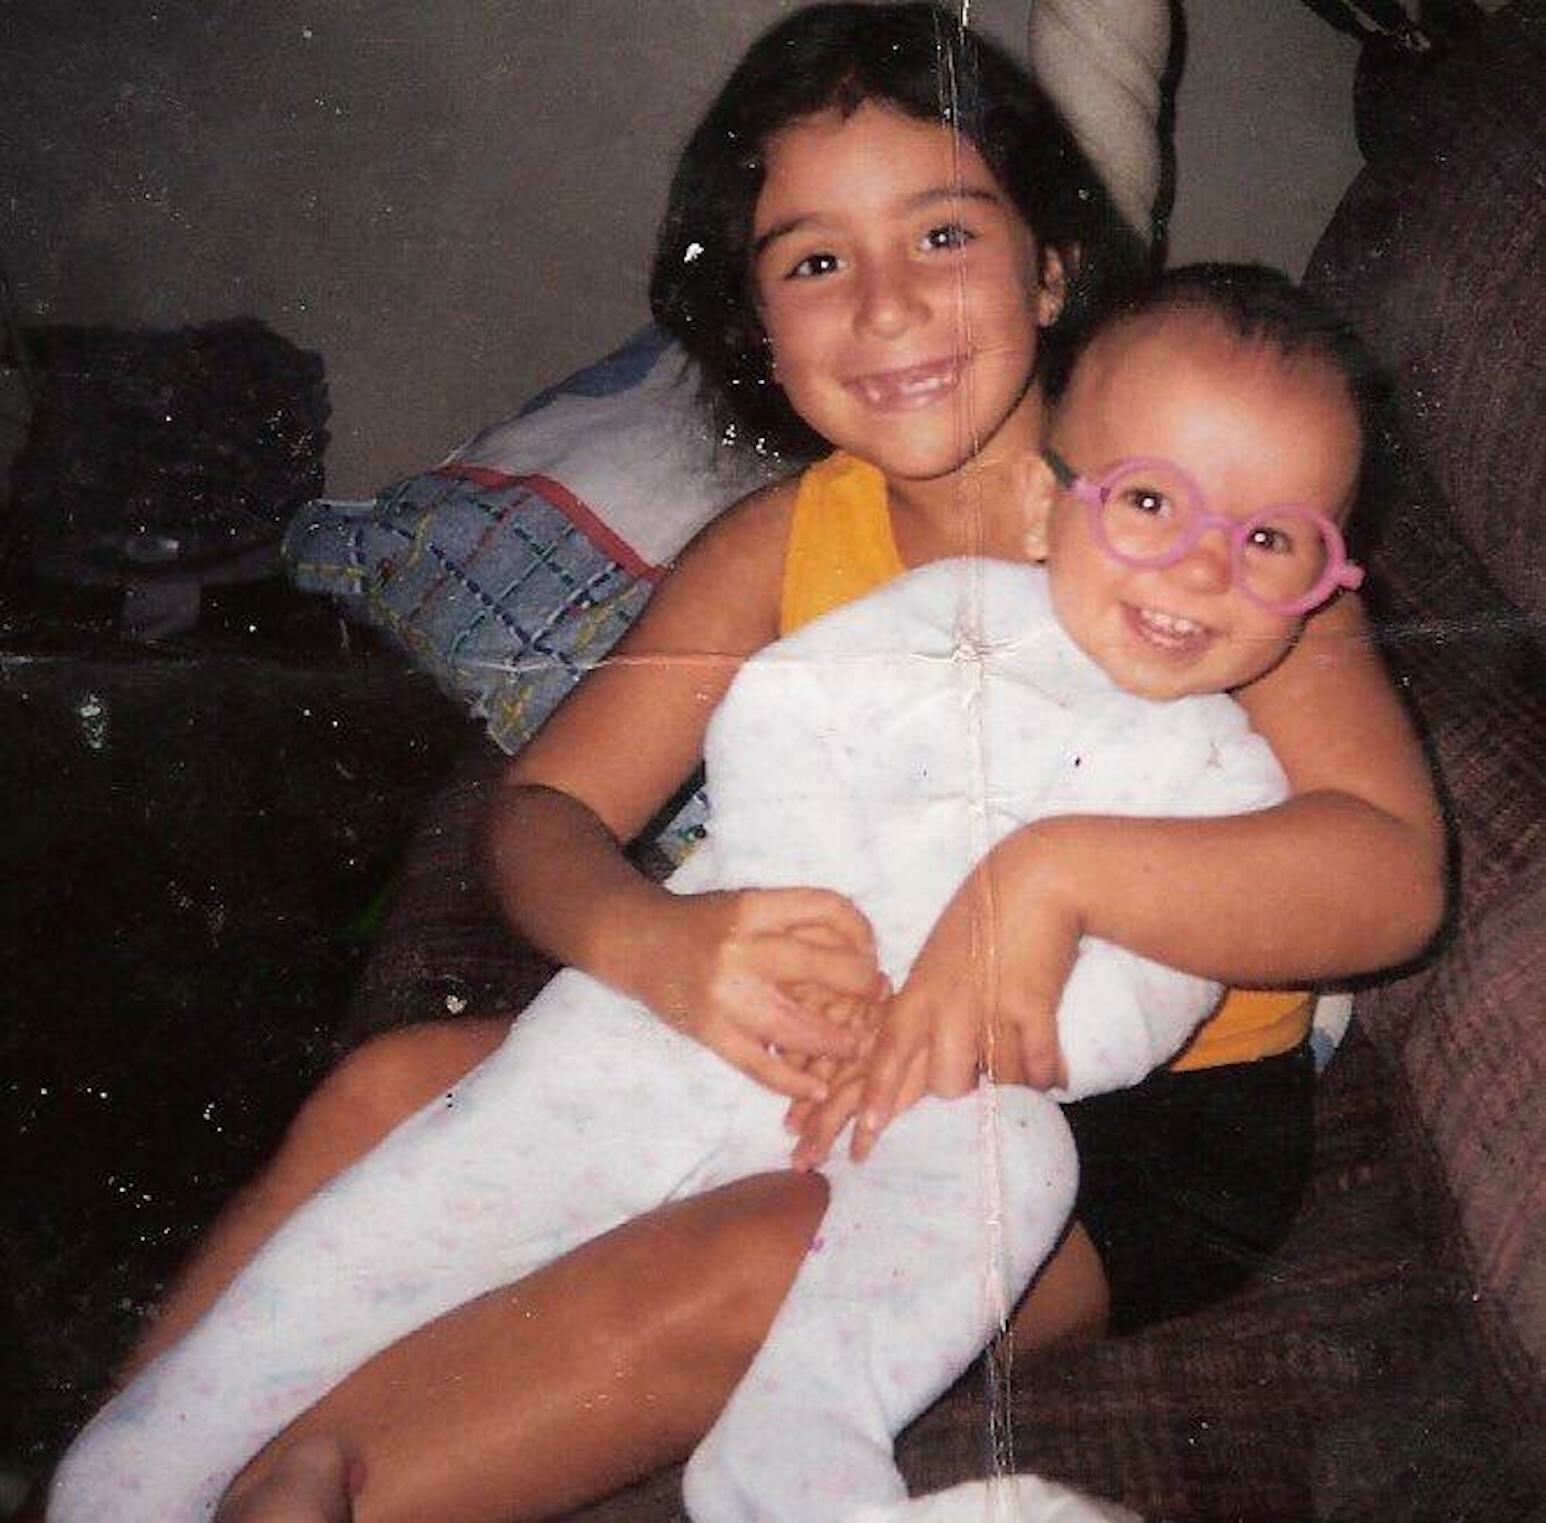 Kimberly at age 8 with her baby sister